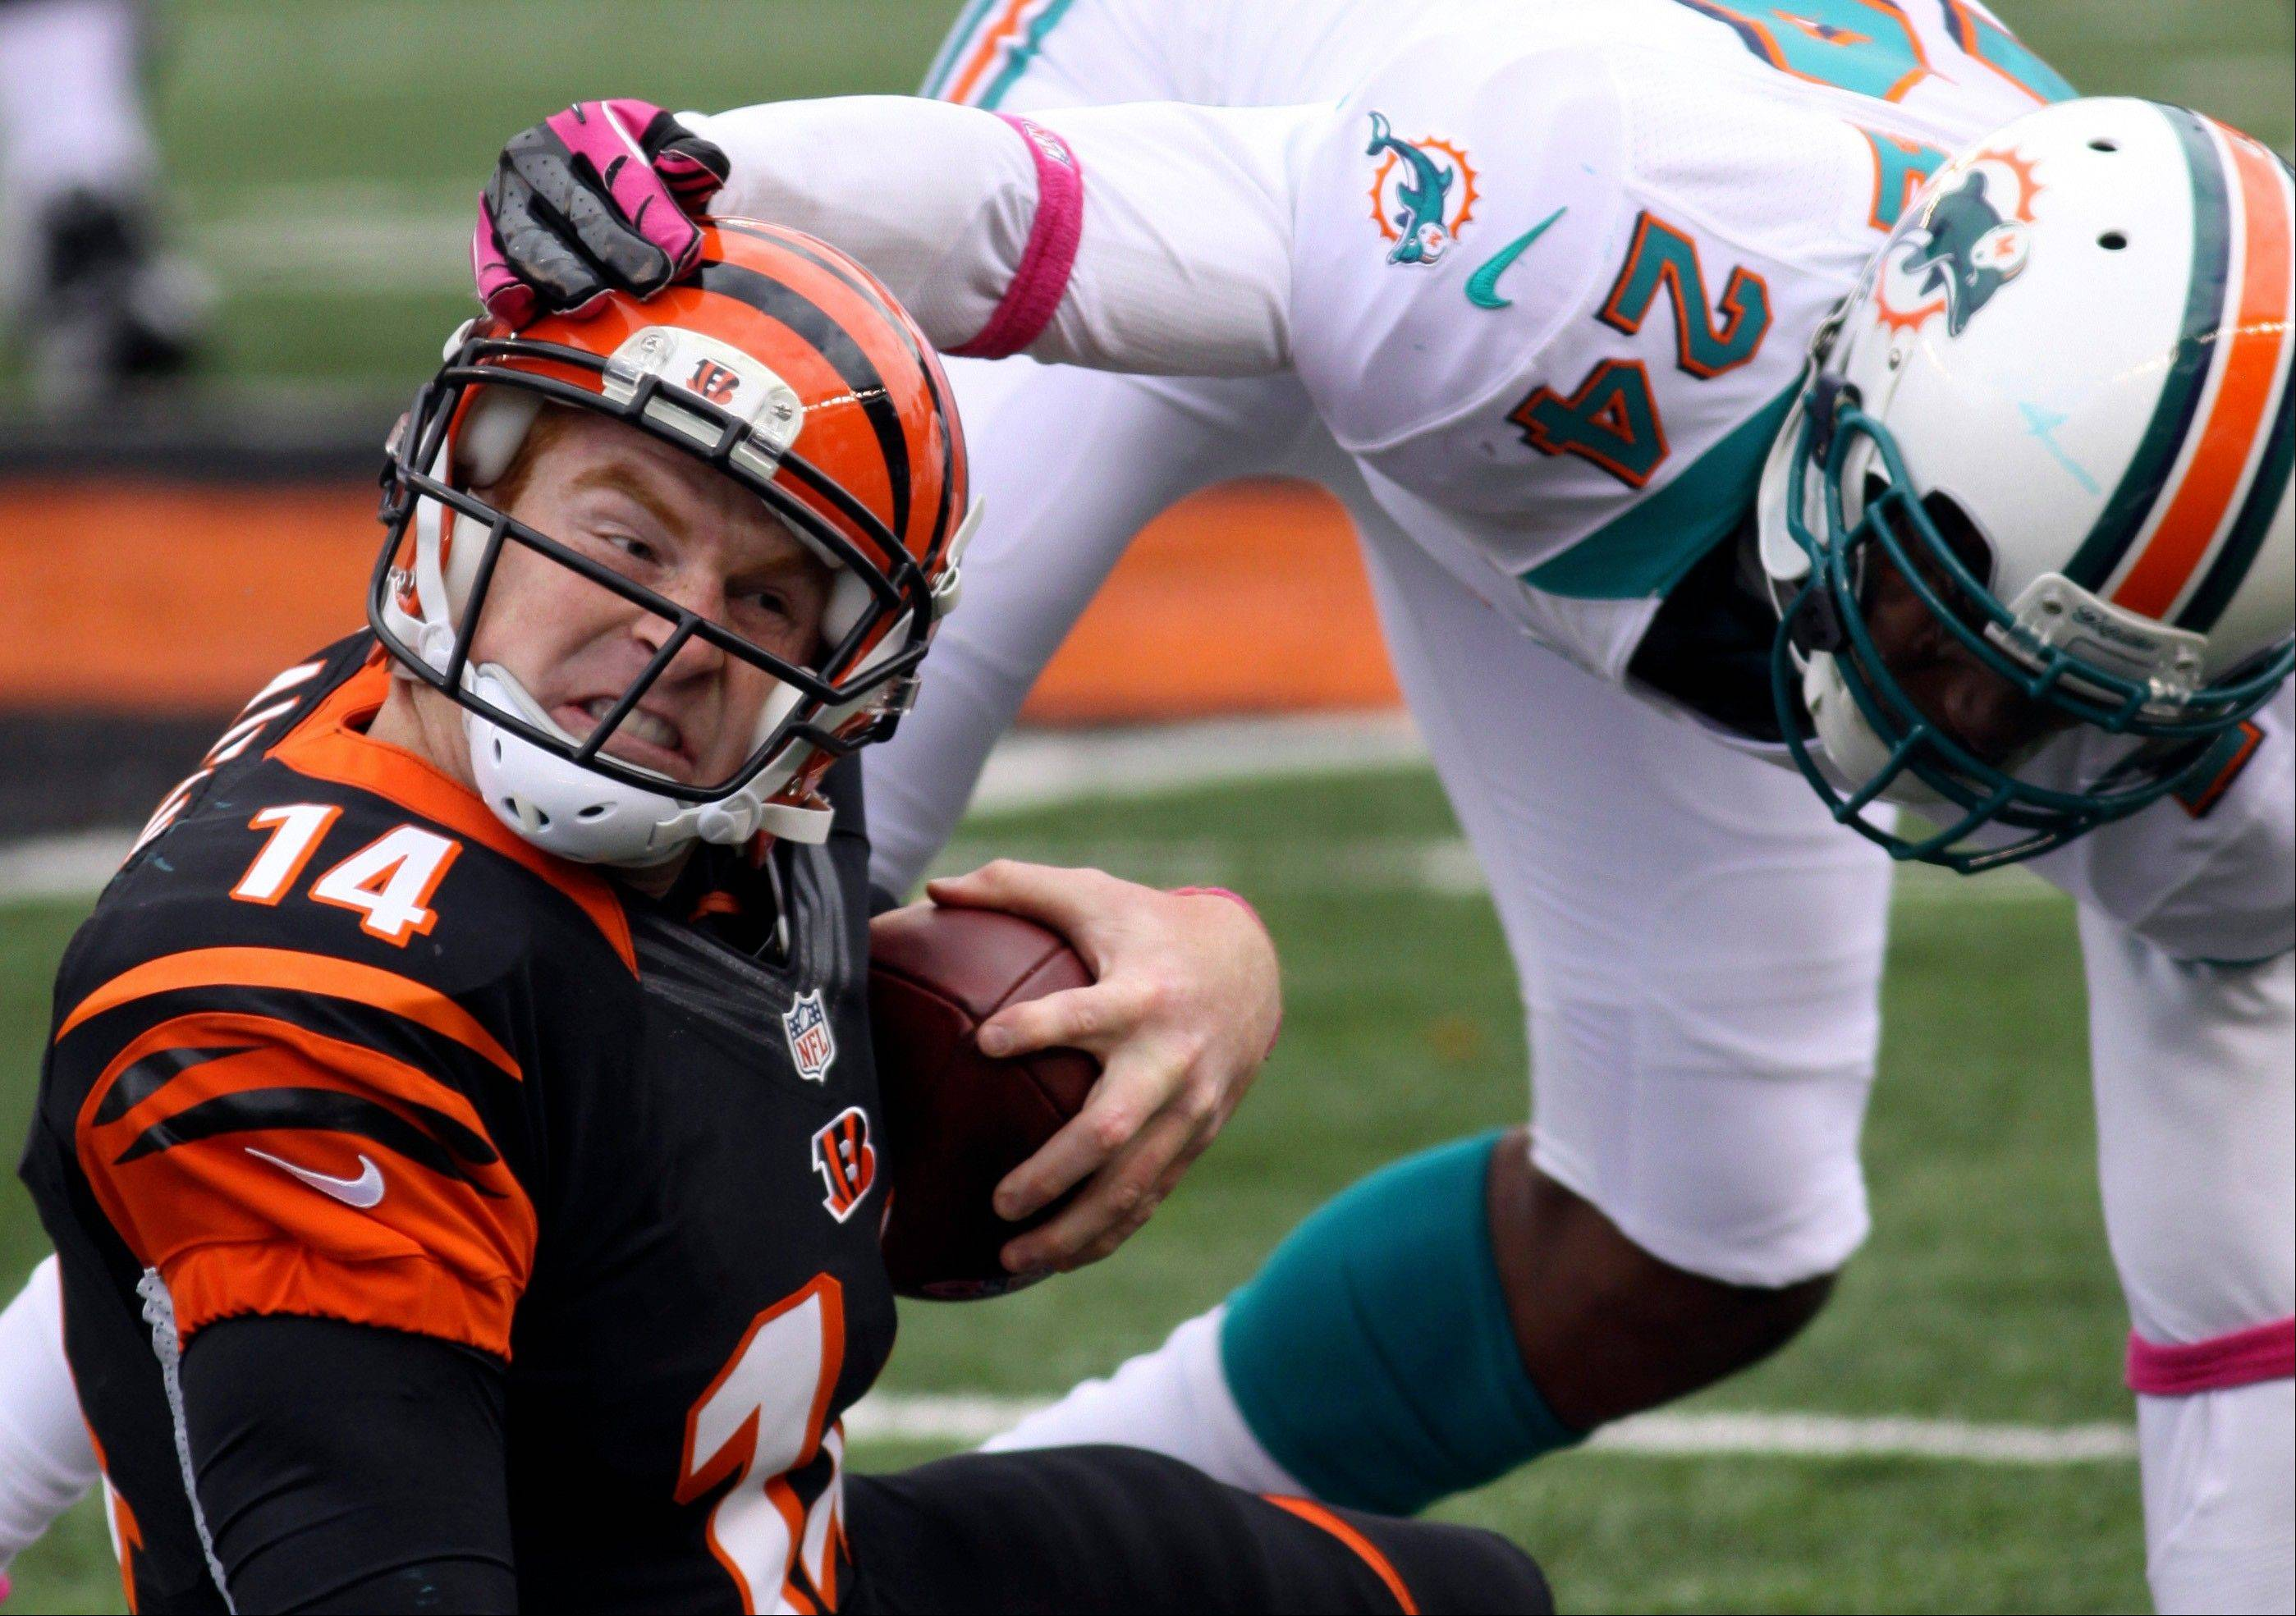 Dolphins cornerback Sean Smith tackles Bengals quarterback Andy Dalton after a short gain in the second half Sunday in Cincinnati.